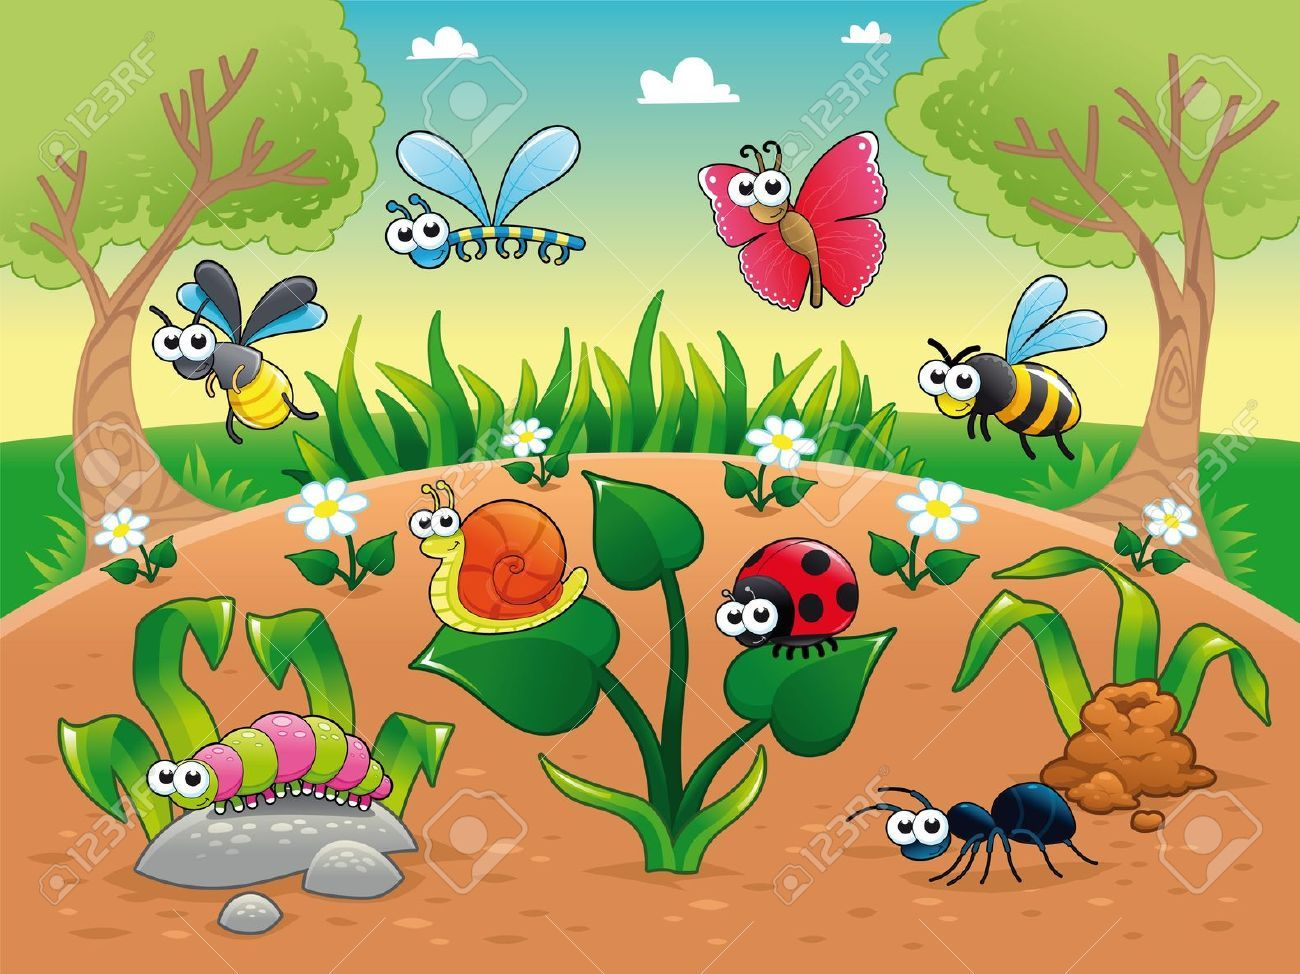 Bugs And A Snail With Background Funny Cartoon And Vector Illustration Royalty Free C Paper Doll Printable Templates Scenery Drawing For Kids Funny Cartoon